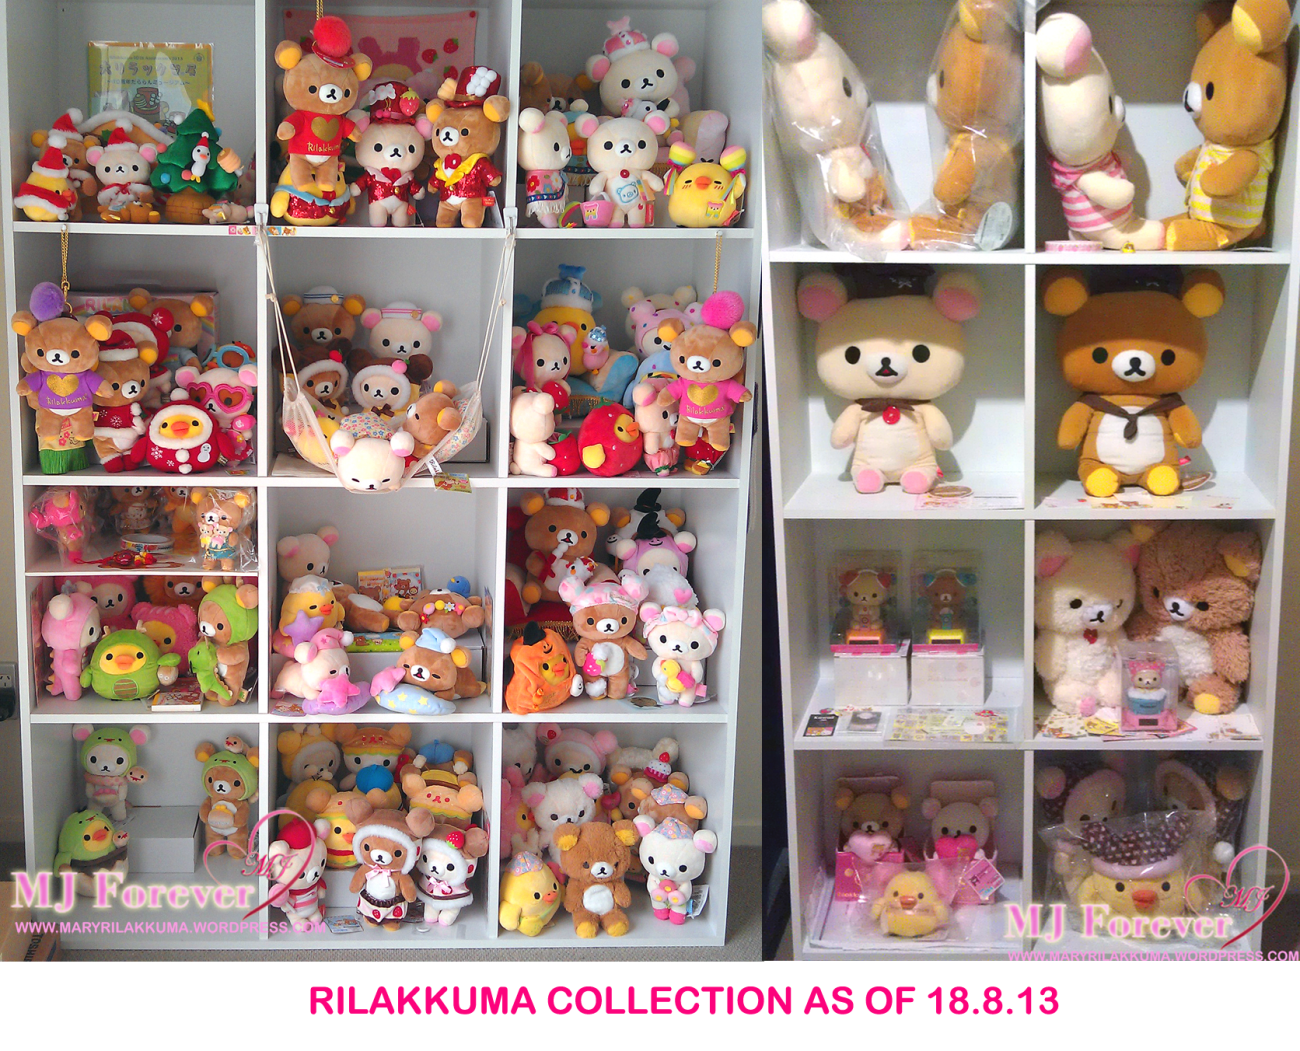 rilakkumacollection